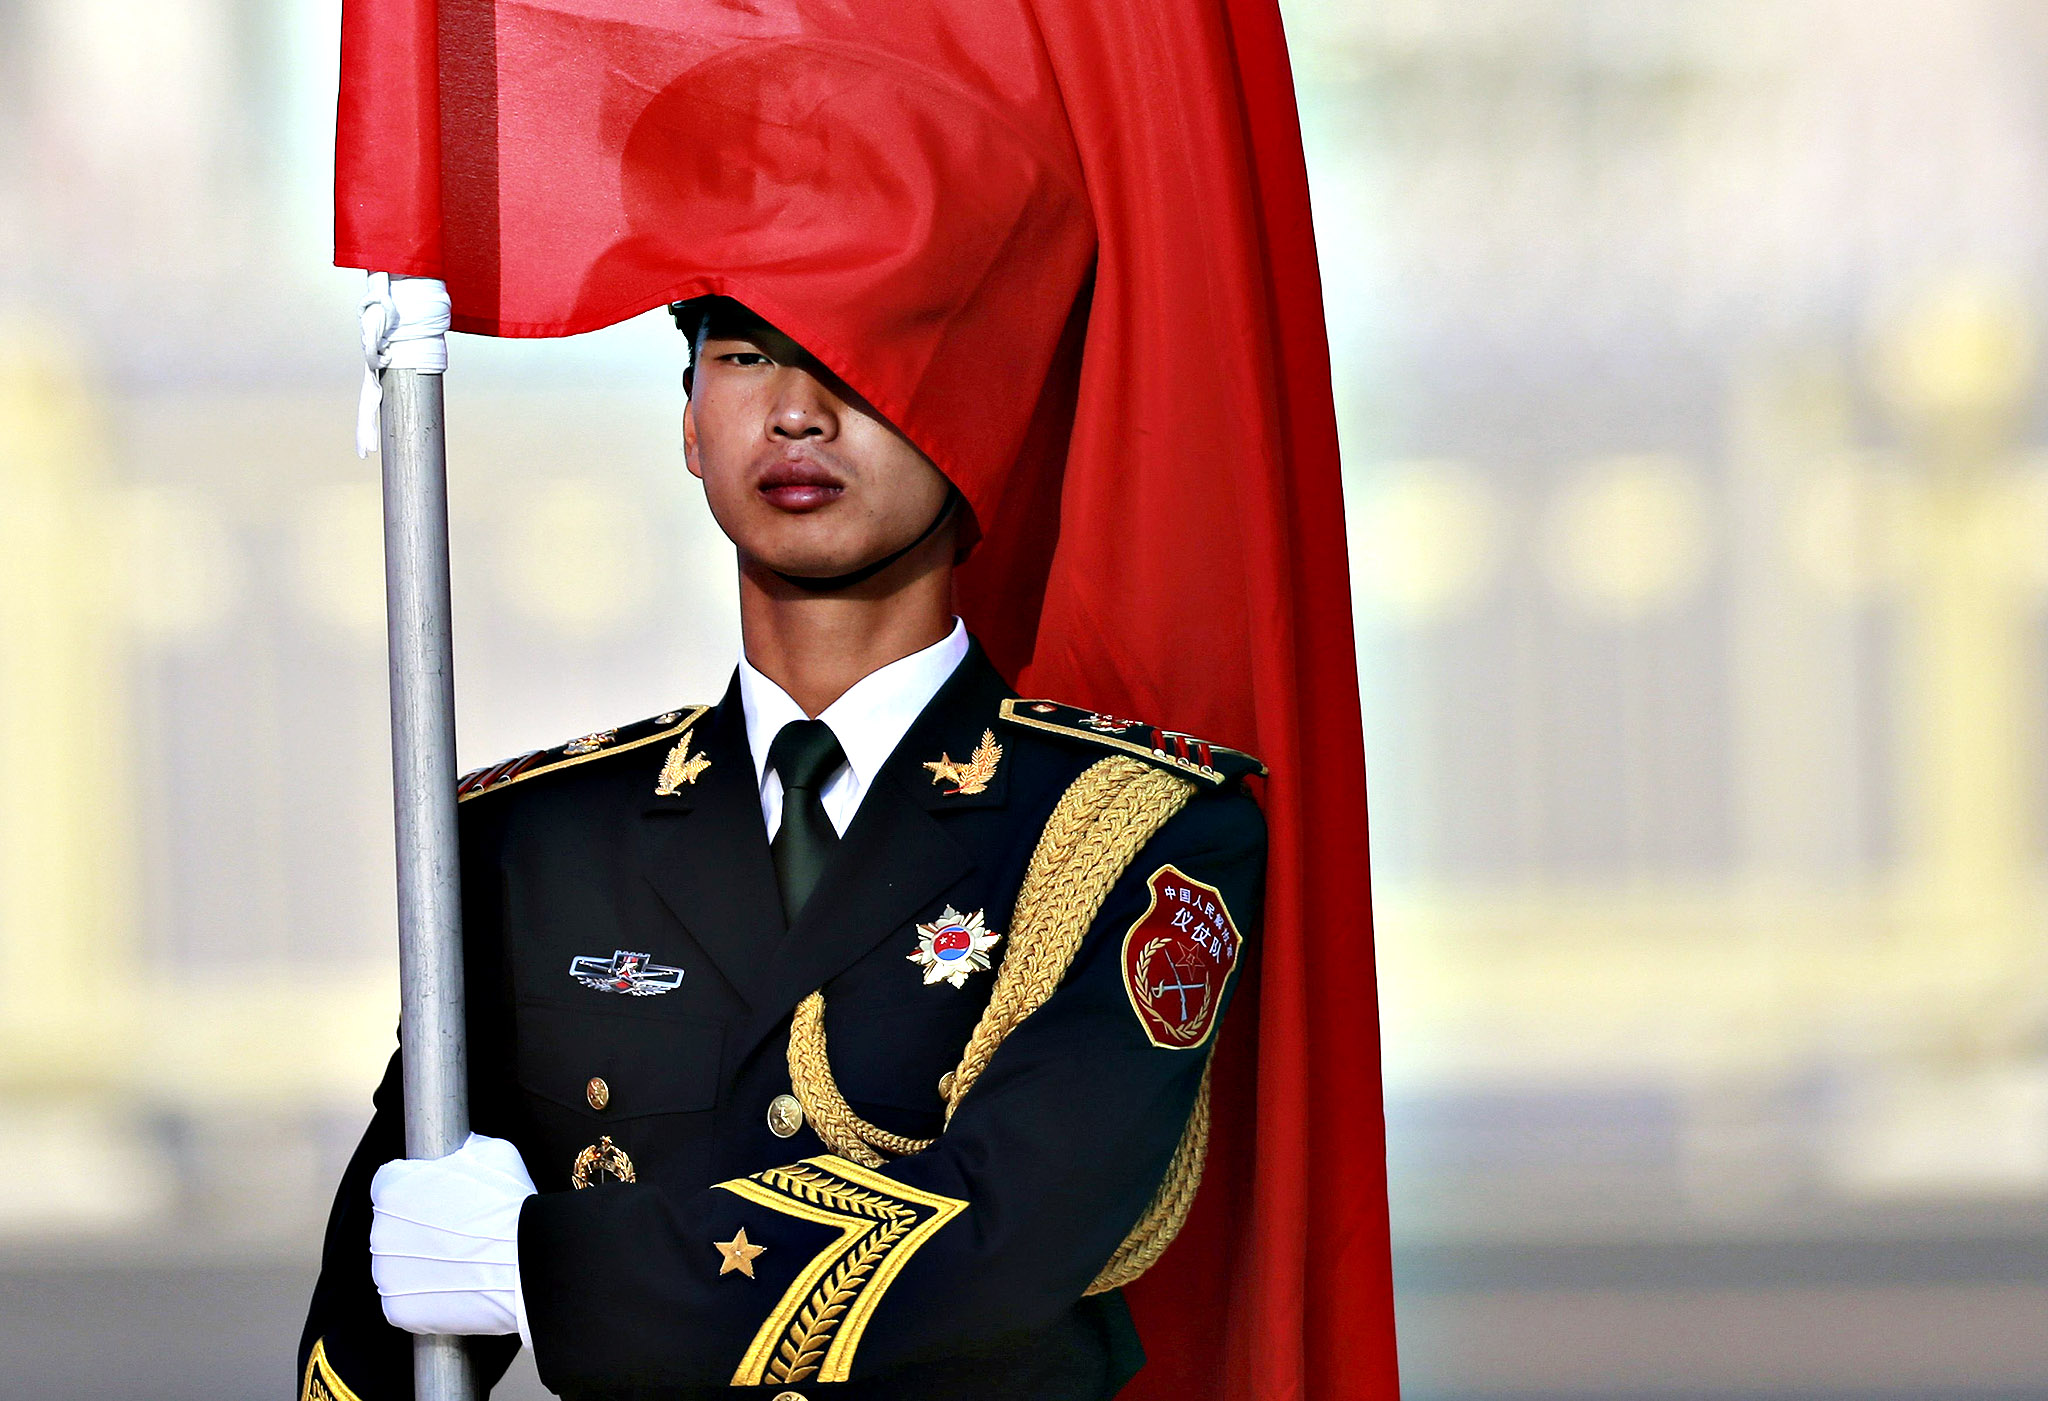 A member of the Chinese People's Liberation Army (PLA) honour guard stands with red flags during a welcoming ceremony for Prime Minister of Antigua and Barbuda Gaston Browne outside the Great Hall of the People in Beijing...A member of the Chinese People's Liberation Army (PLA) honour guard stands with red flags during a welcoming ceremony for Prime Minister of Antigua and Barbuda Gaston Browne outside the Great Hall of the People in Beijing, August 26, 2014.